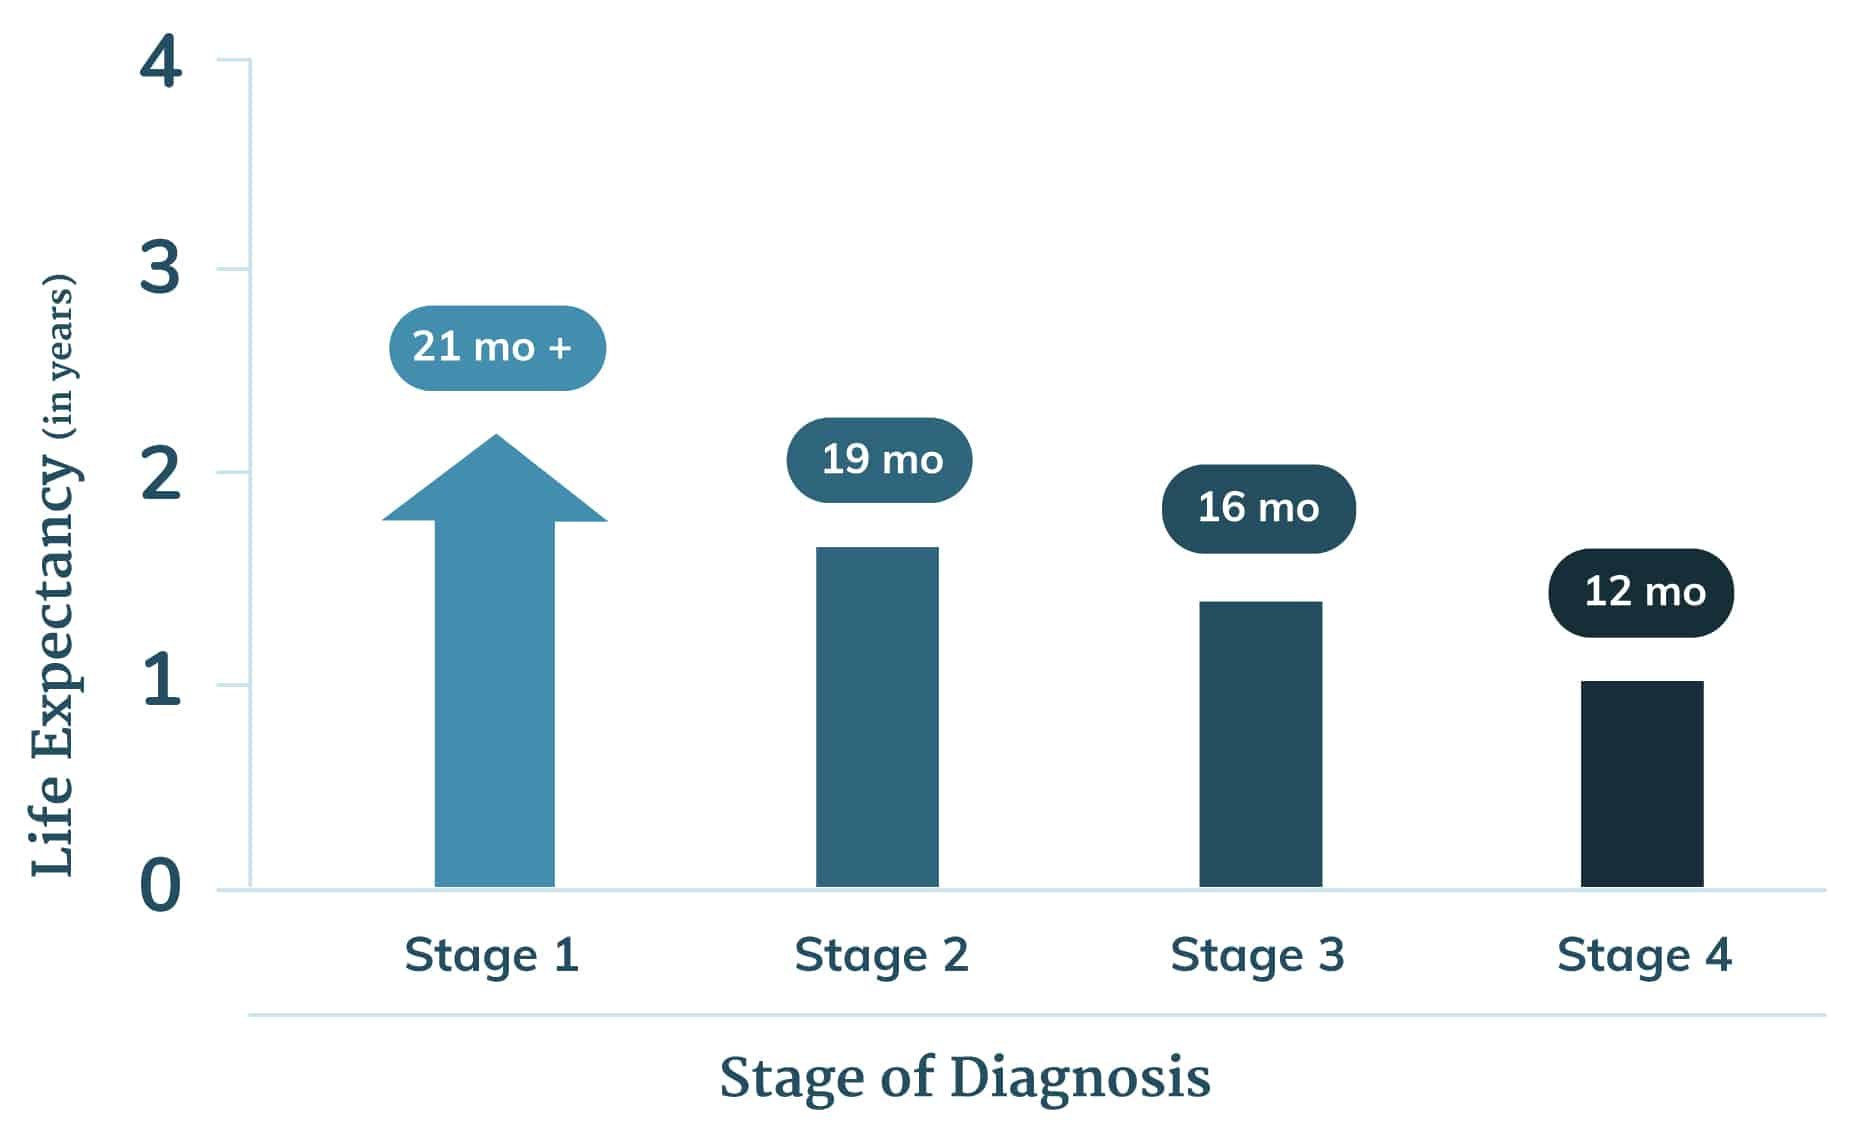 peritoneal cancer stage 3 survival rate